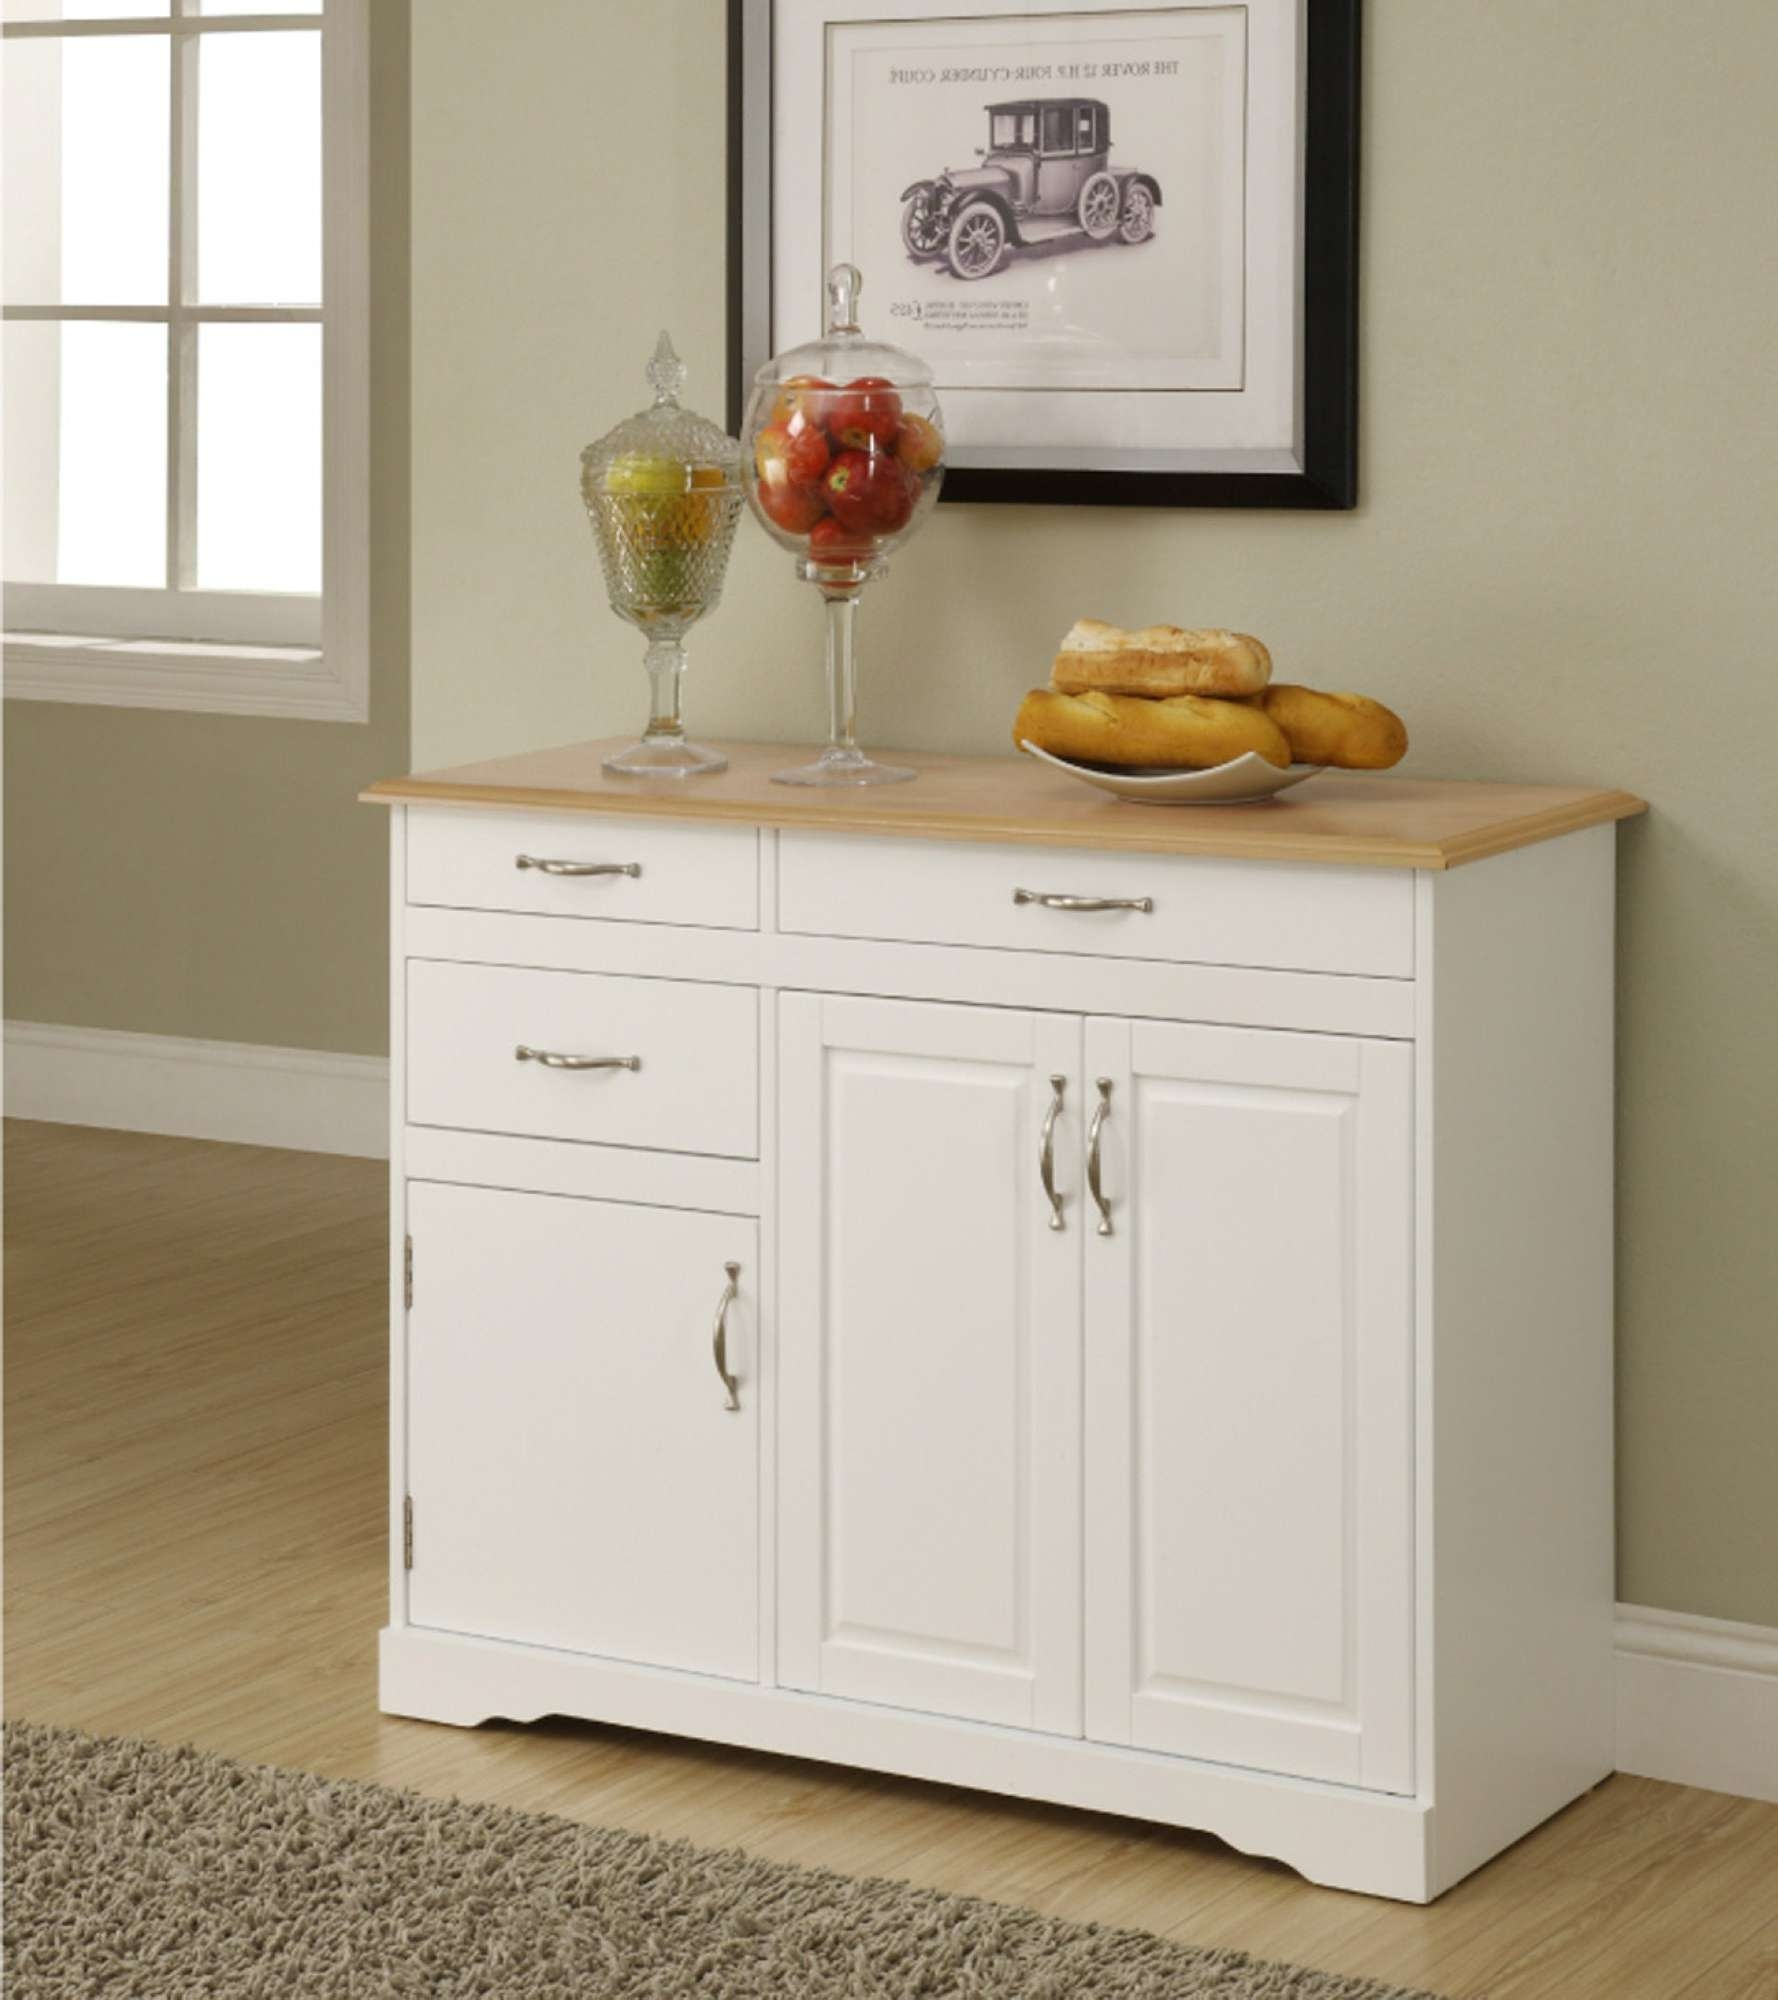 Antique Kitchen Buffet – Bestartisticinteriors For White Sideboards Cabinets (View 4 of 20)